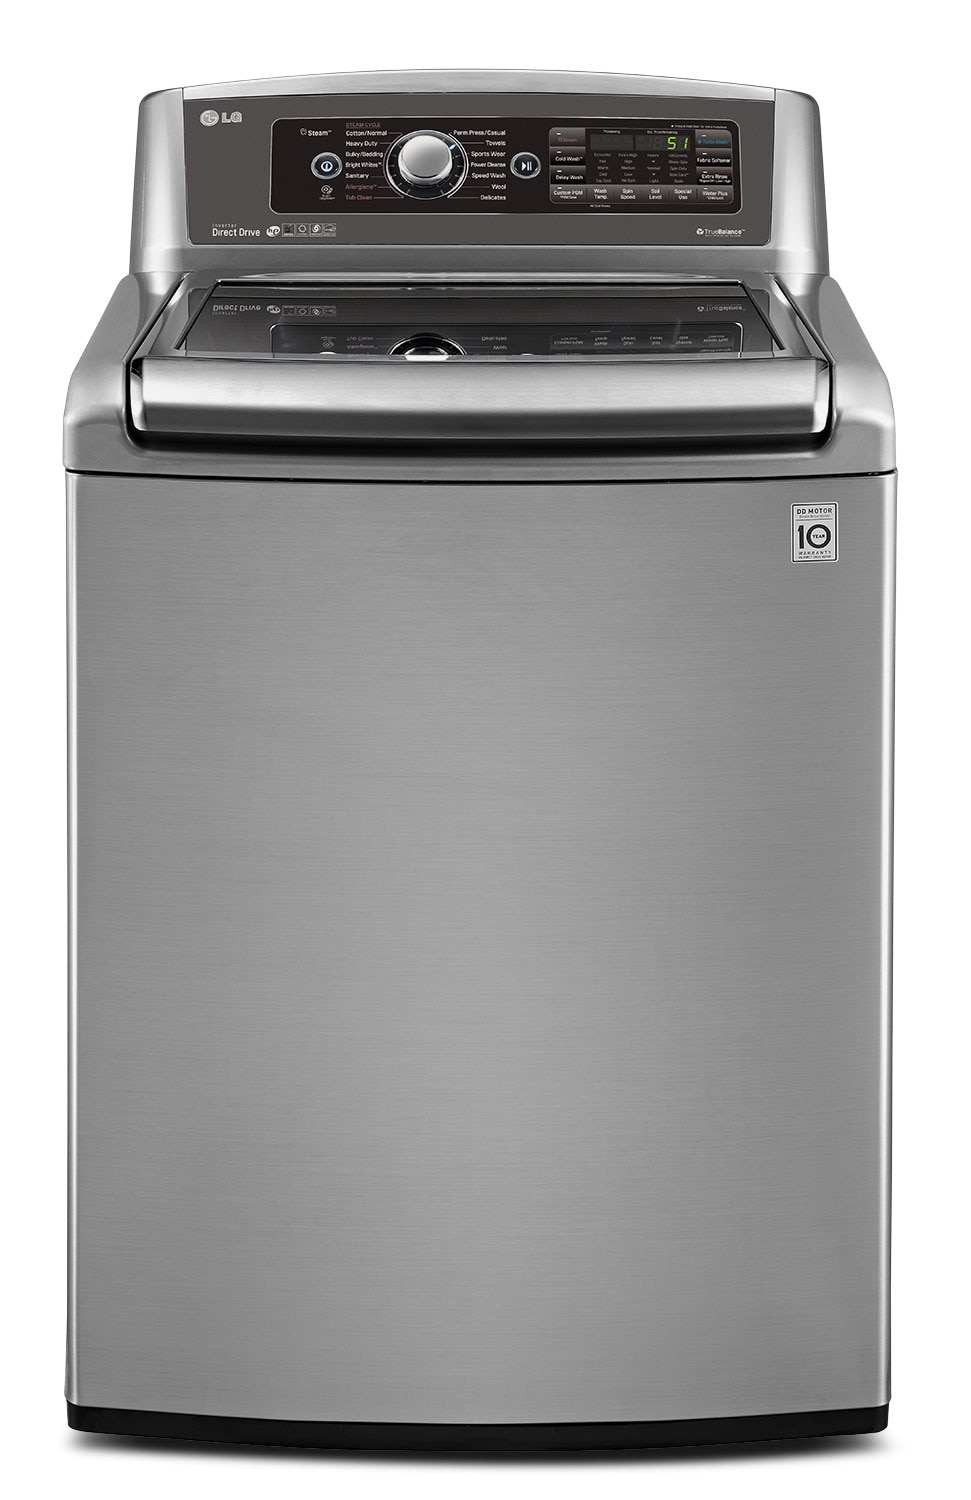 Washers and Dryers - LG Graphite Steel Top-Load Washer (6.1 Cu. Ft. IEC) - WT5680HVA